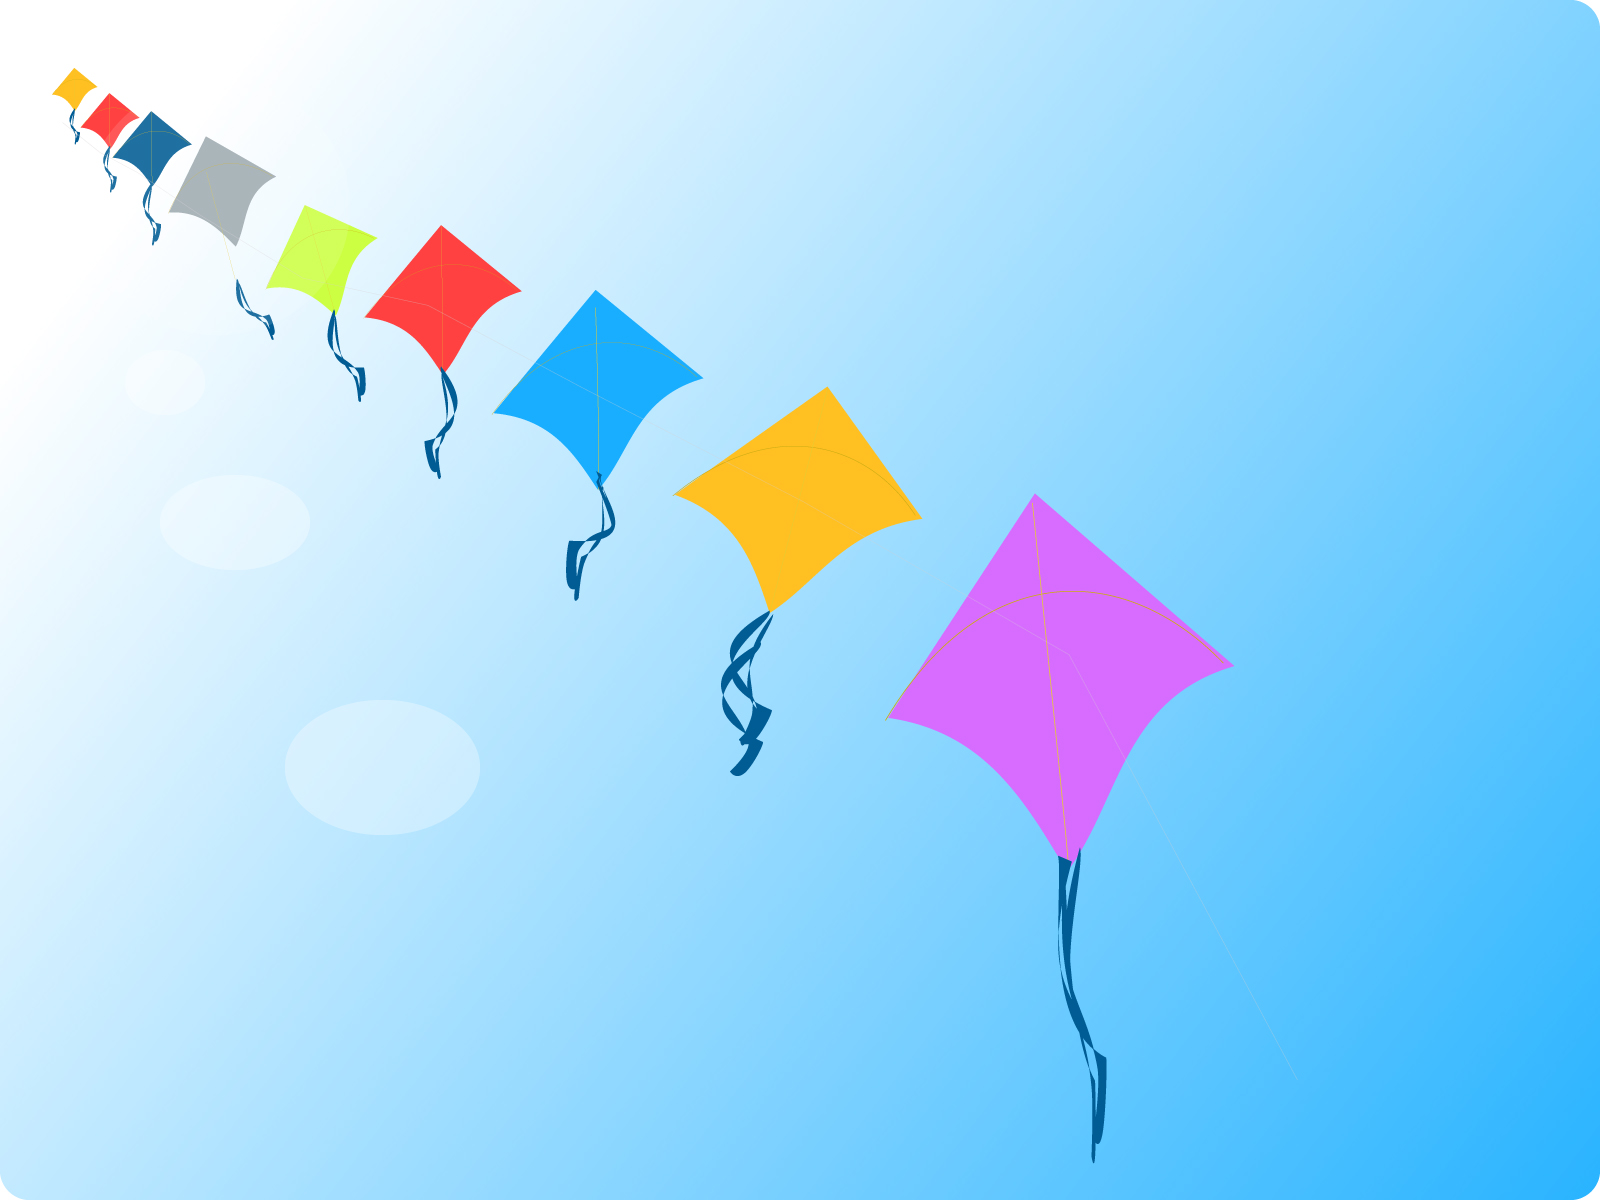 Row of Kites Backgrounds Cartoon Games Templates PPT 1600x1200